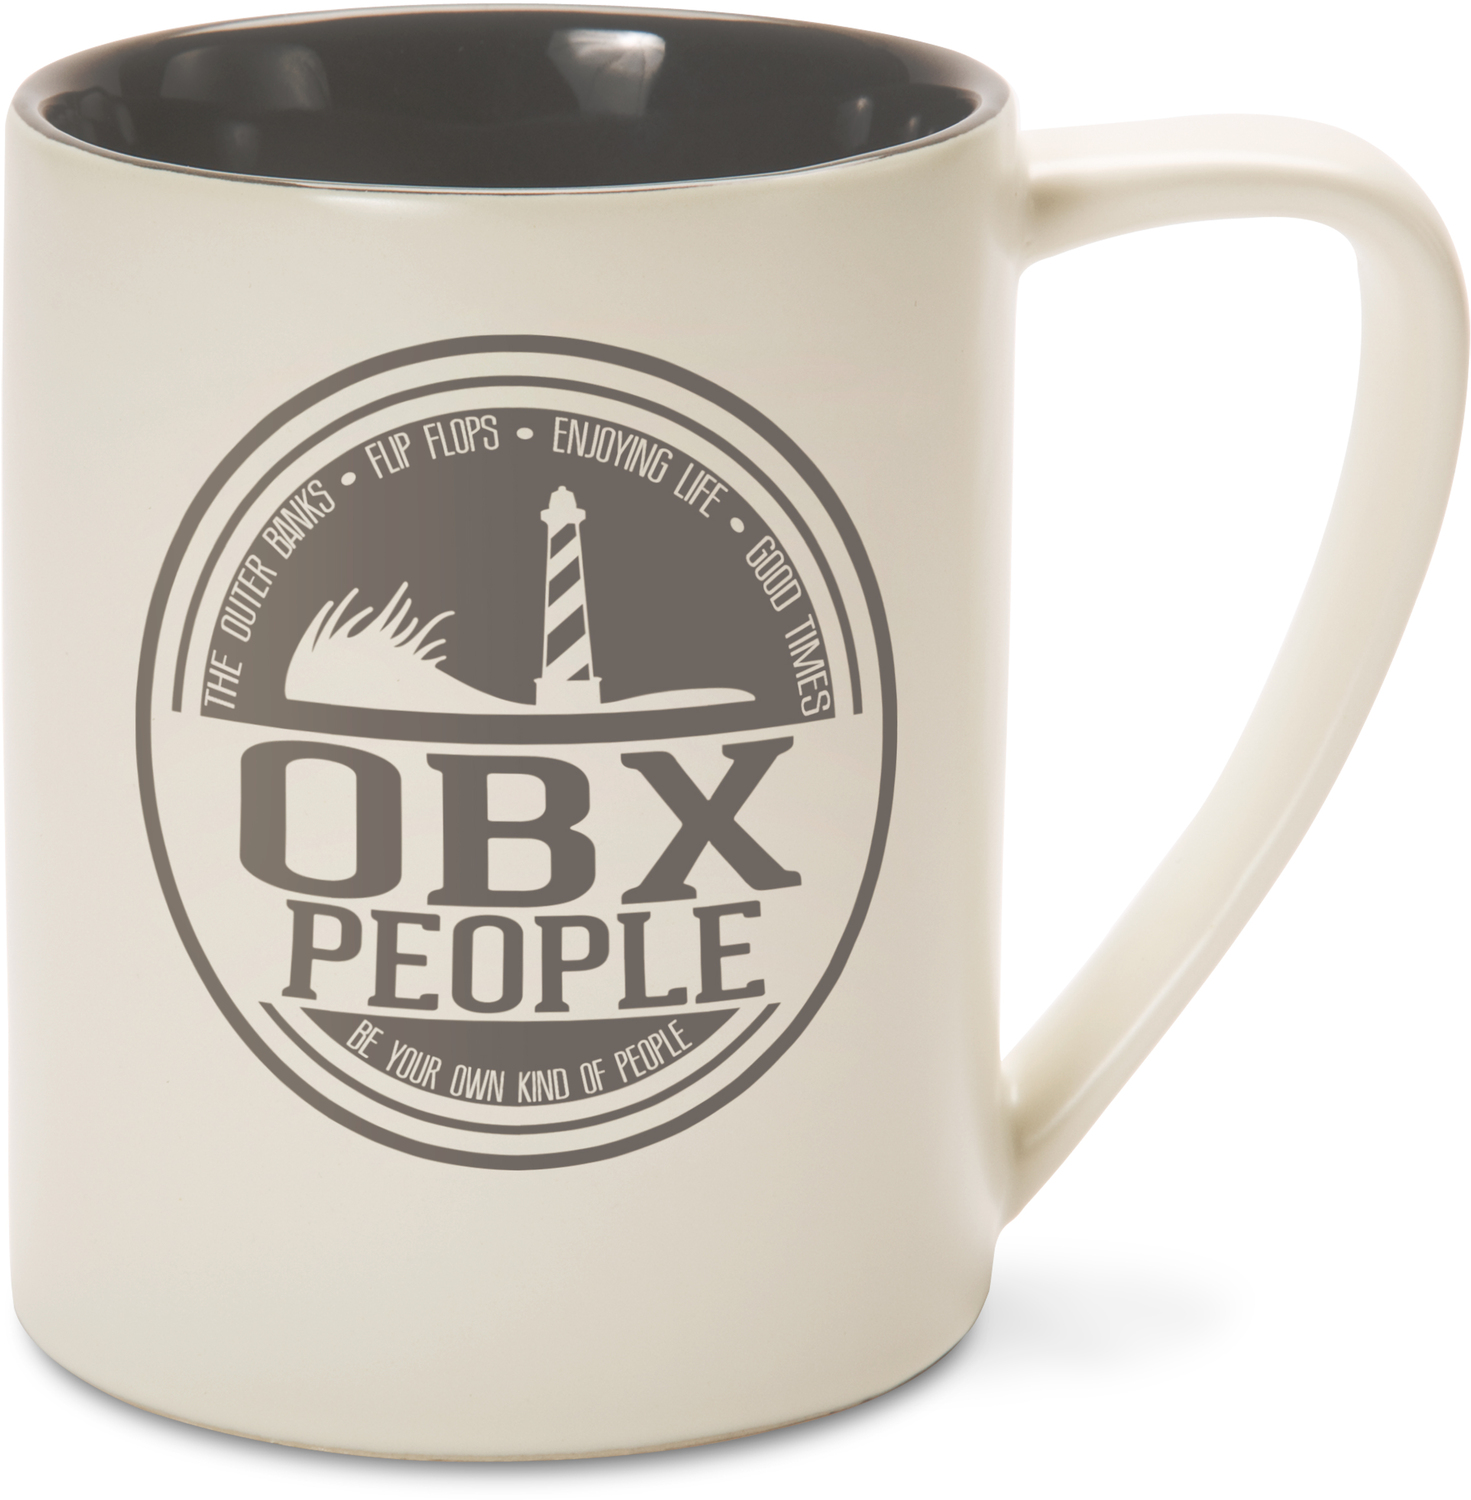 OBX People by We People - OBX People - 18 oz Mug